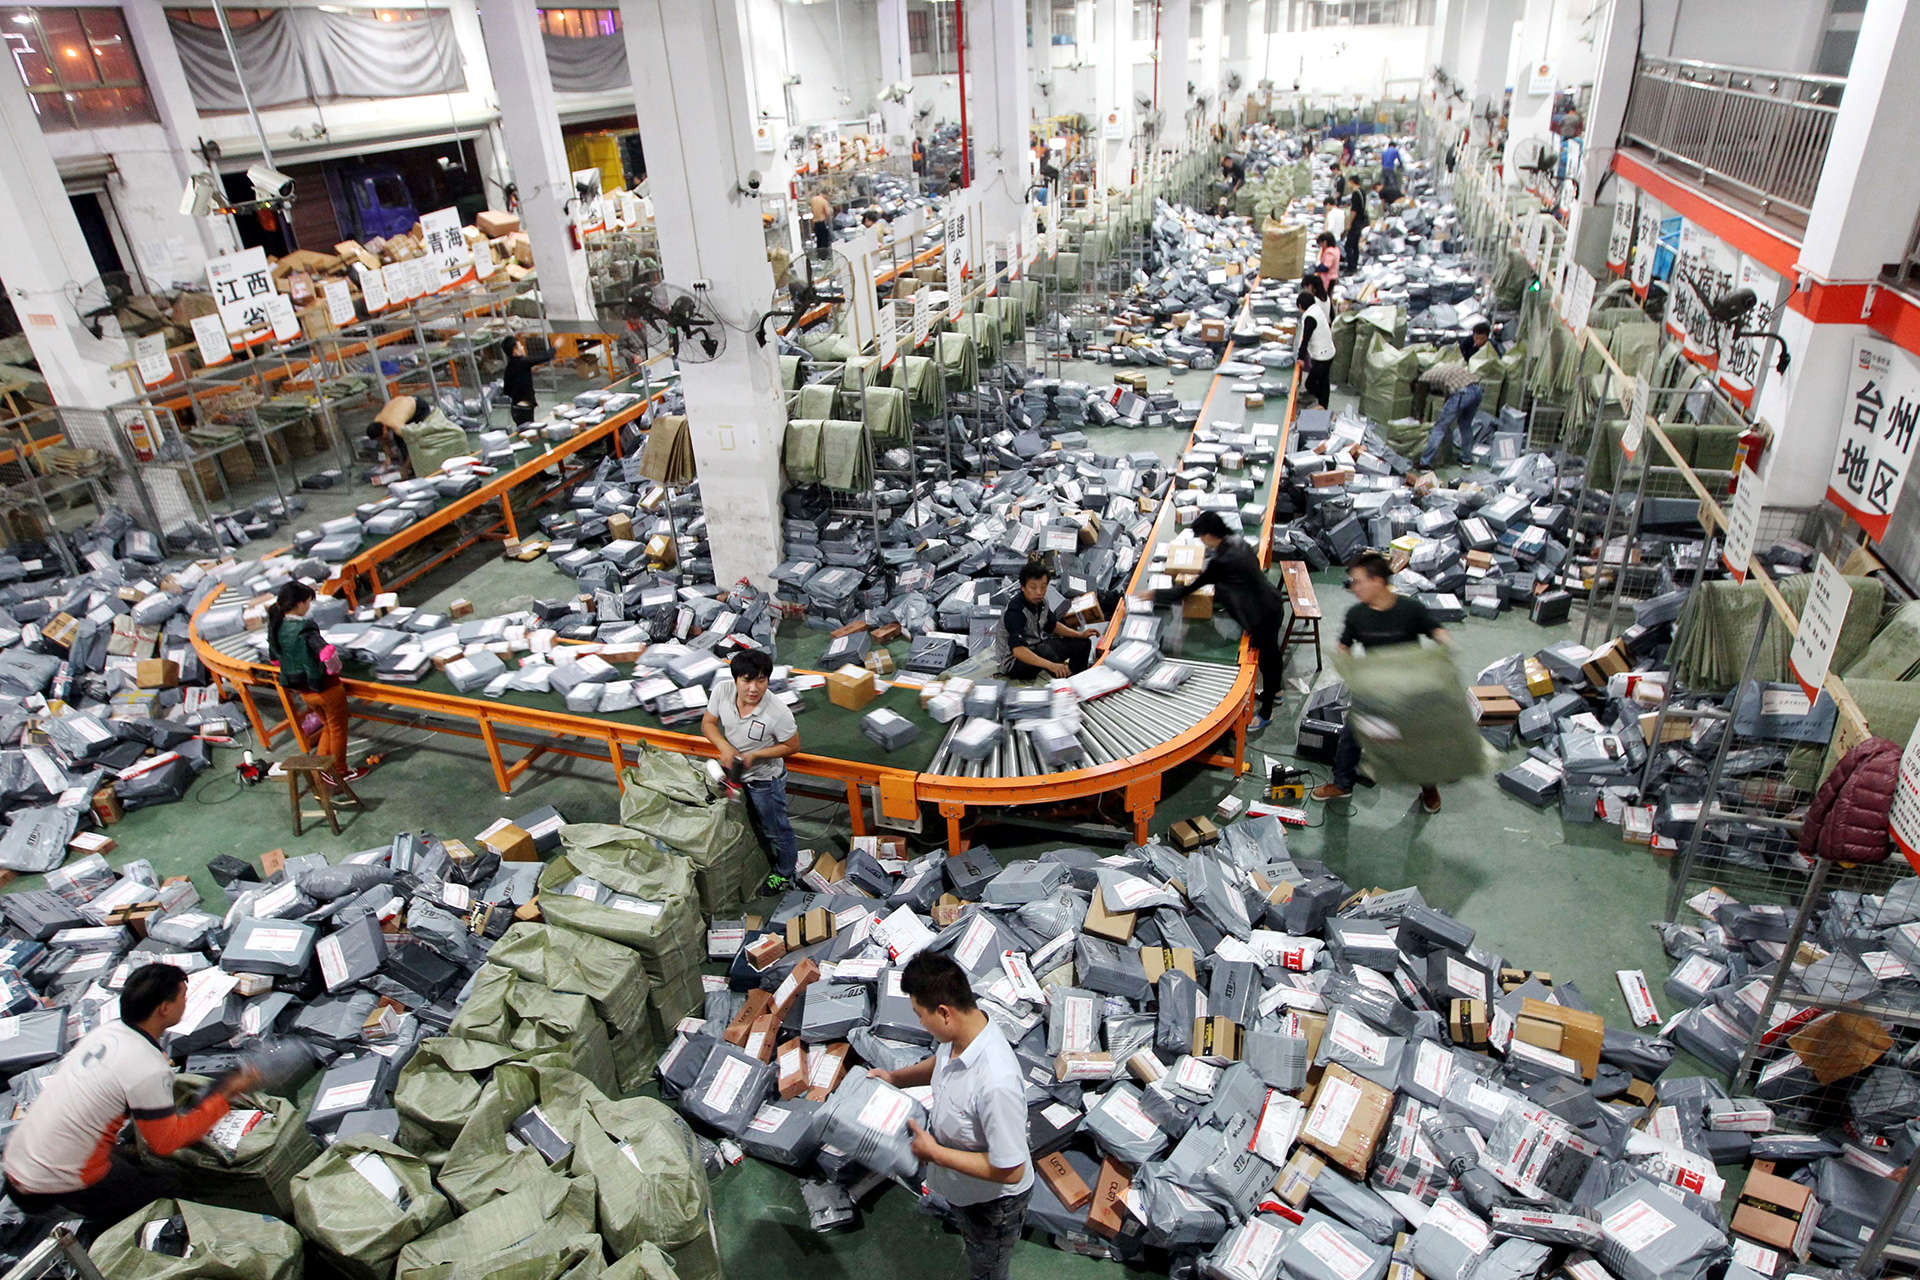 """Chinese workers sort parcels, most of which are from online shopping, at a distribution center of STO Express in Wenzhou city, east China's Zhejiang province, 12 November 2014. China's largest Internet retailer rang up more than $9 billion during the country's biggest online shopping holiday, smashing last year's figure to set a record for a single day of sales. Analysts said the """"Singles' Day"""" figures from e-commerce giant Alibaba show a continuing shift to online shopping over brick-and-mortar stores at a time of slowing economic growth in China. Singles' Day was invented by Chinese college students in the 1990s as an anti-Valentine's Day when people could buy something for themselves. It was set for November 11 because of the date's four """"ones"""". But Hangzhou-based Alibaba Group, which is known for its retail sites Taobao and Tmall.com, turned it into a day of online shopping for all with bargain deals. Other Chinese online retailers also have followed suit. In 2012, Alibaba posted sales totaling $3 billion on the Singles' Day, surpassing Cyber Monday in the United States. Last year's total was $5.71 billion. Alibaba Group announced this year's record sales of 57.1 billion yuan ($9.32 billion) for Tuesday shortly after midnight. During Singles' Day, a giant screen at the company's headquarters shows the sales figures updating in real time"""